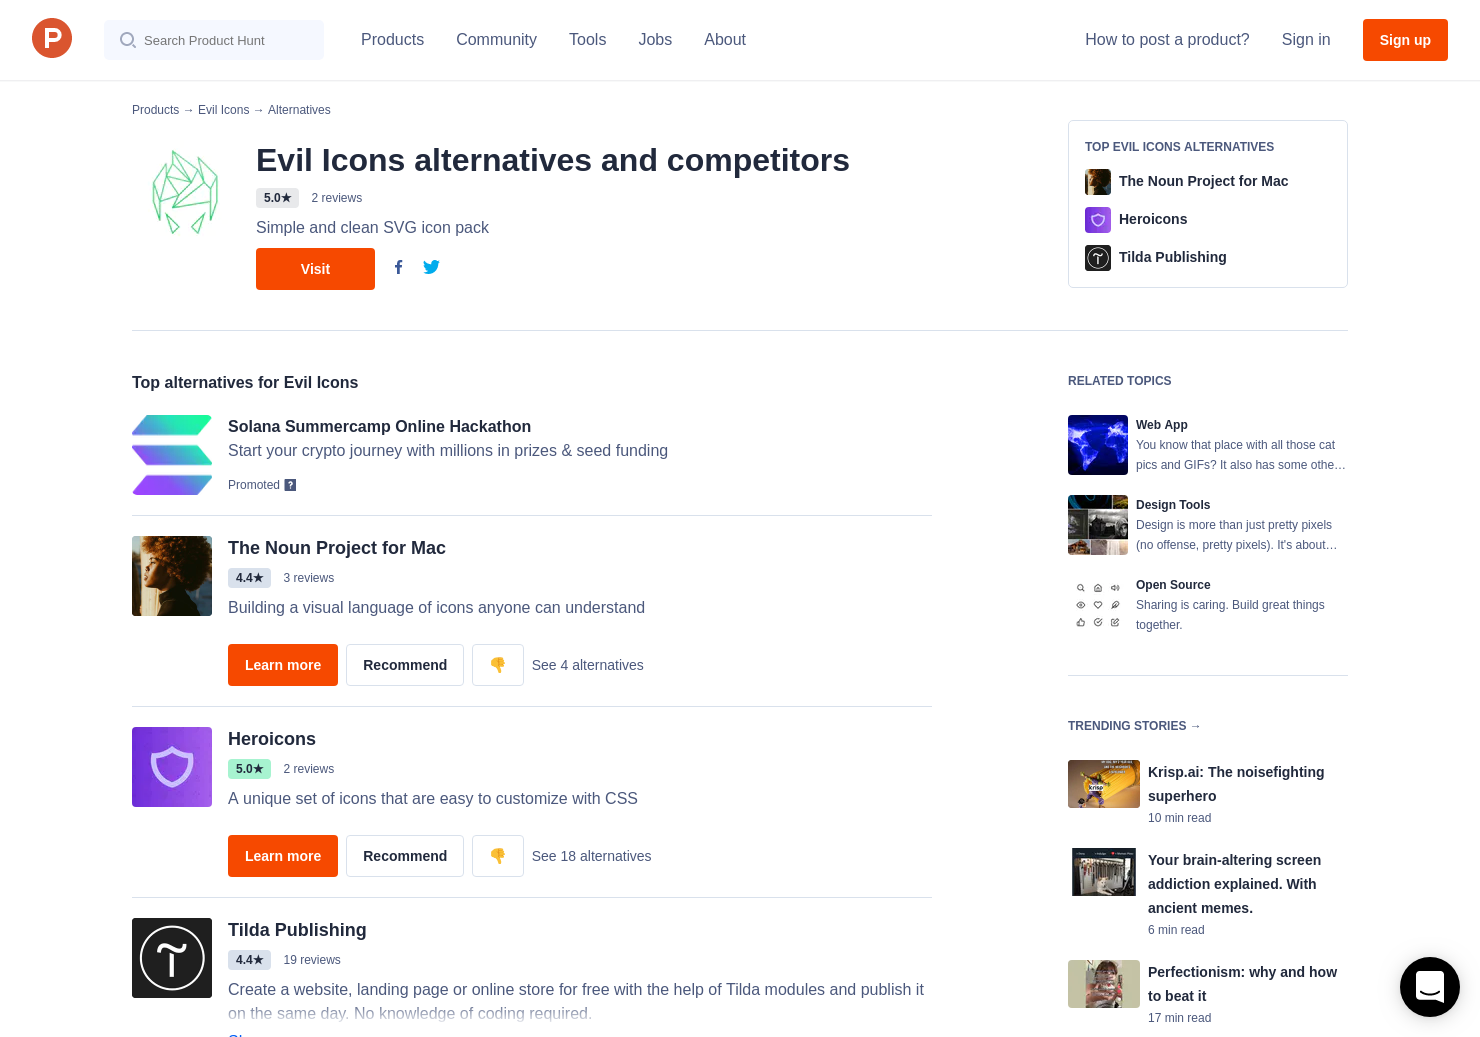 12 Alternatives to Evil Icons | Product Hunt